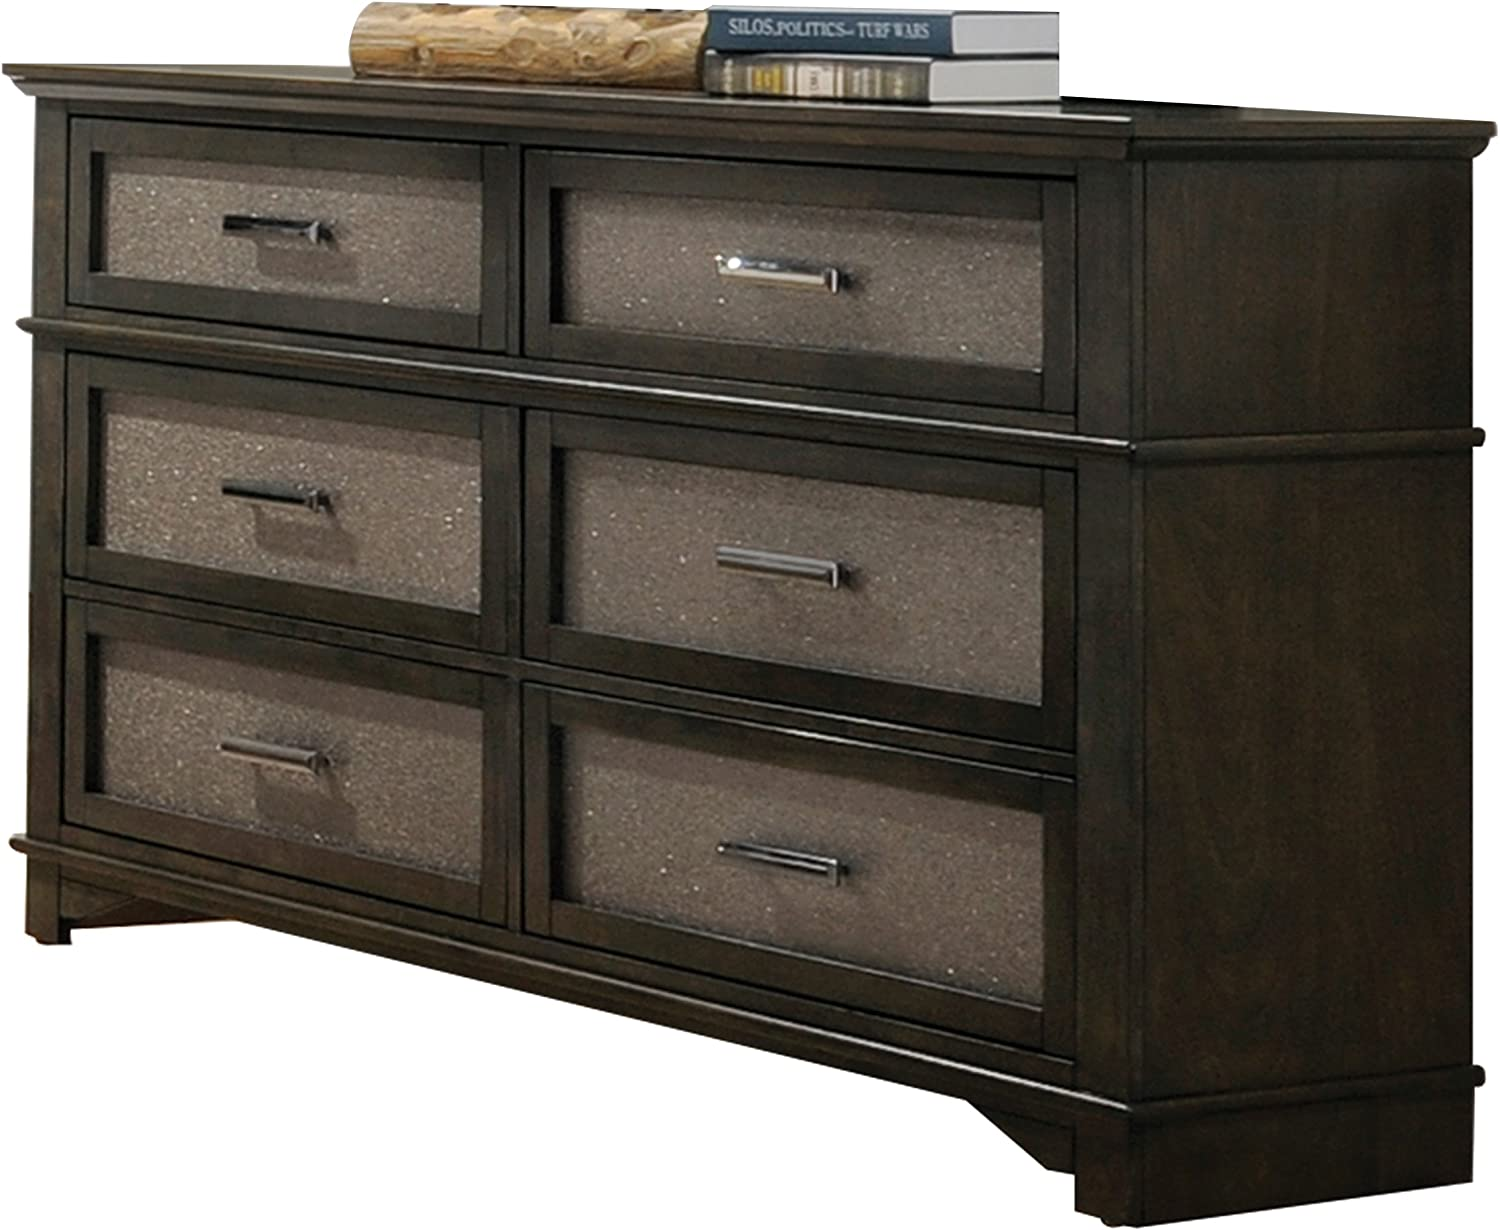 ACME Furniture 26285 Anatole Dresser, Dark Walnut